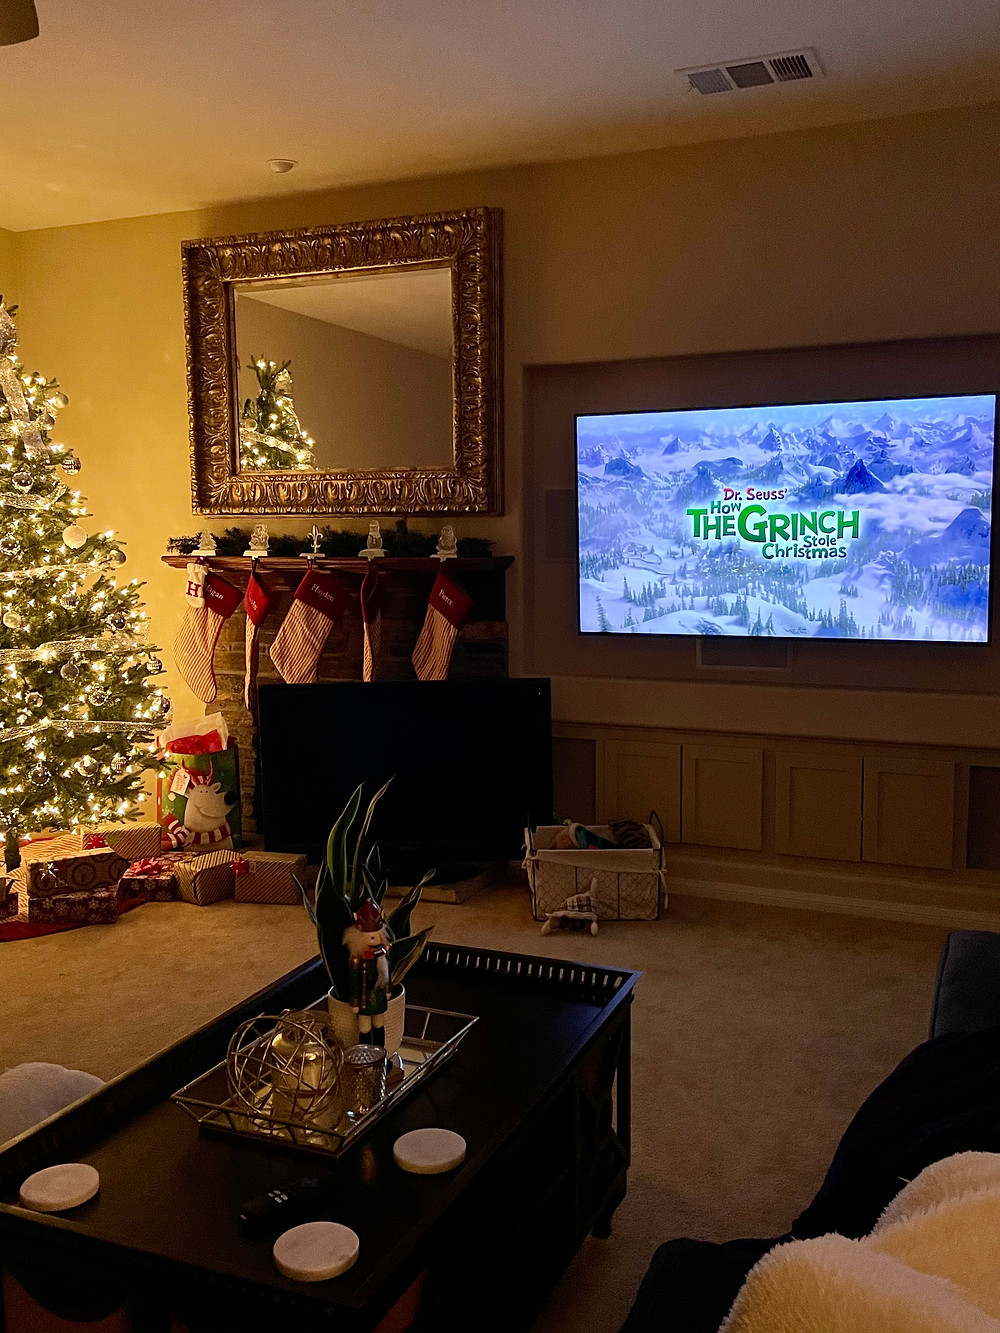 The Grinch Movie with Christmas Tree